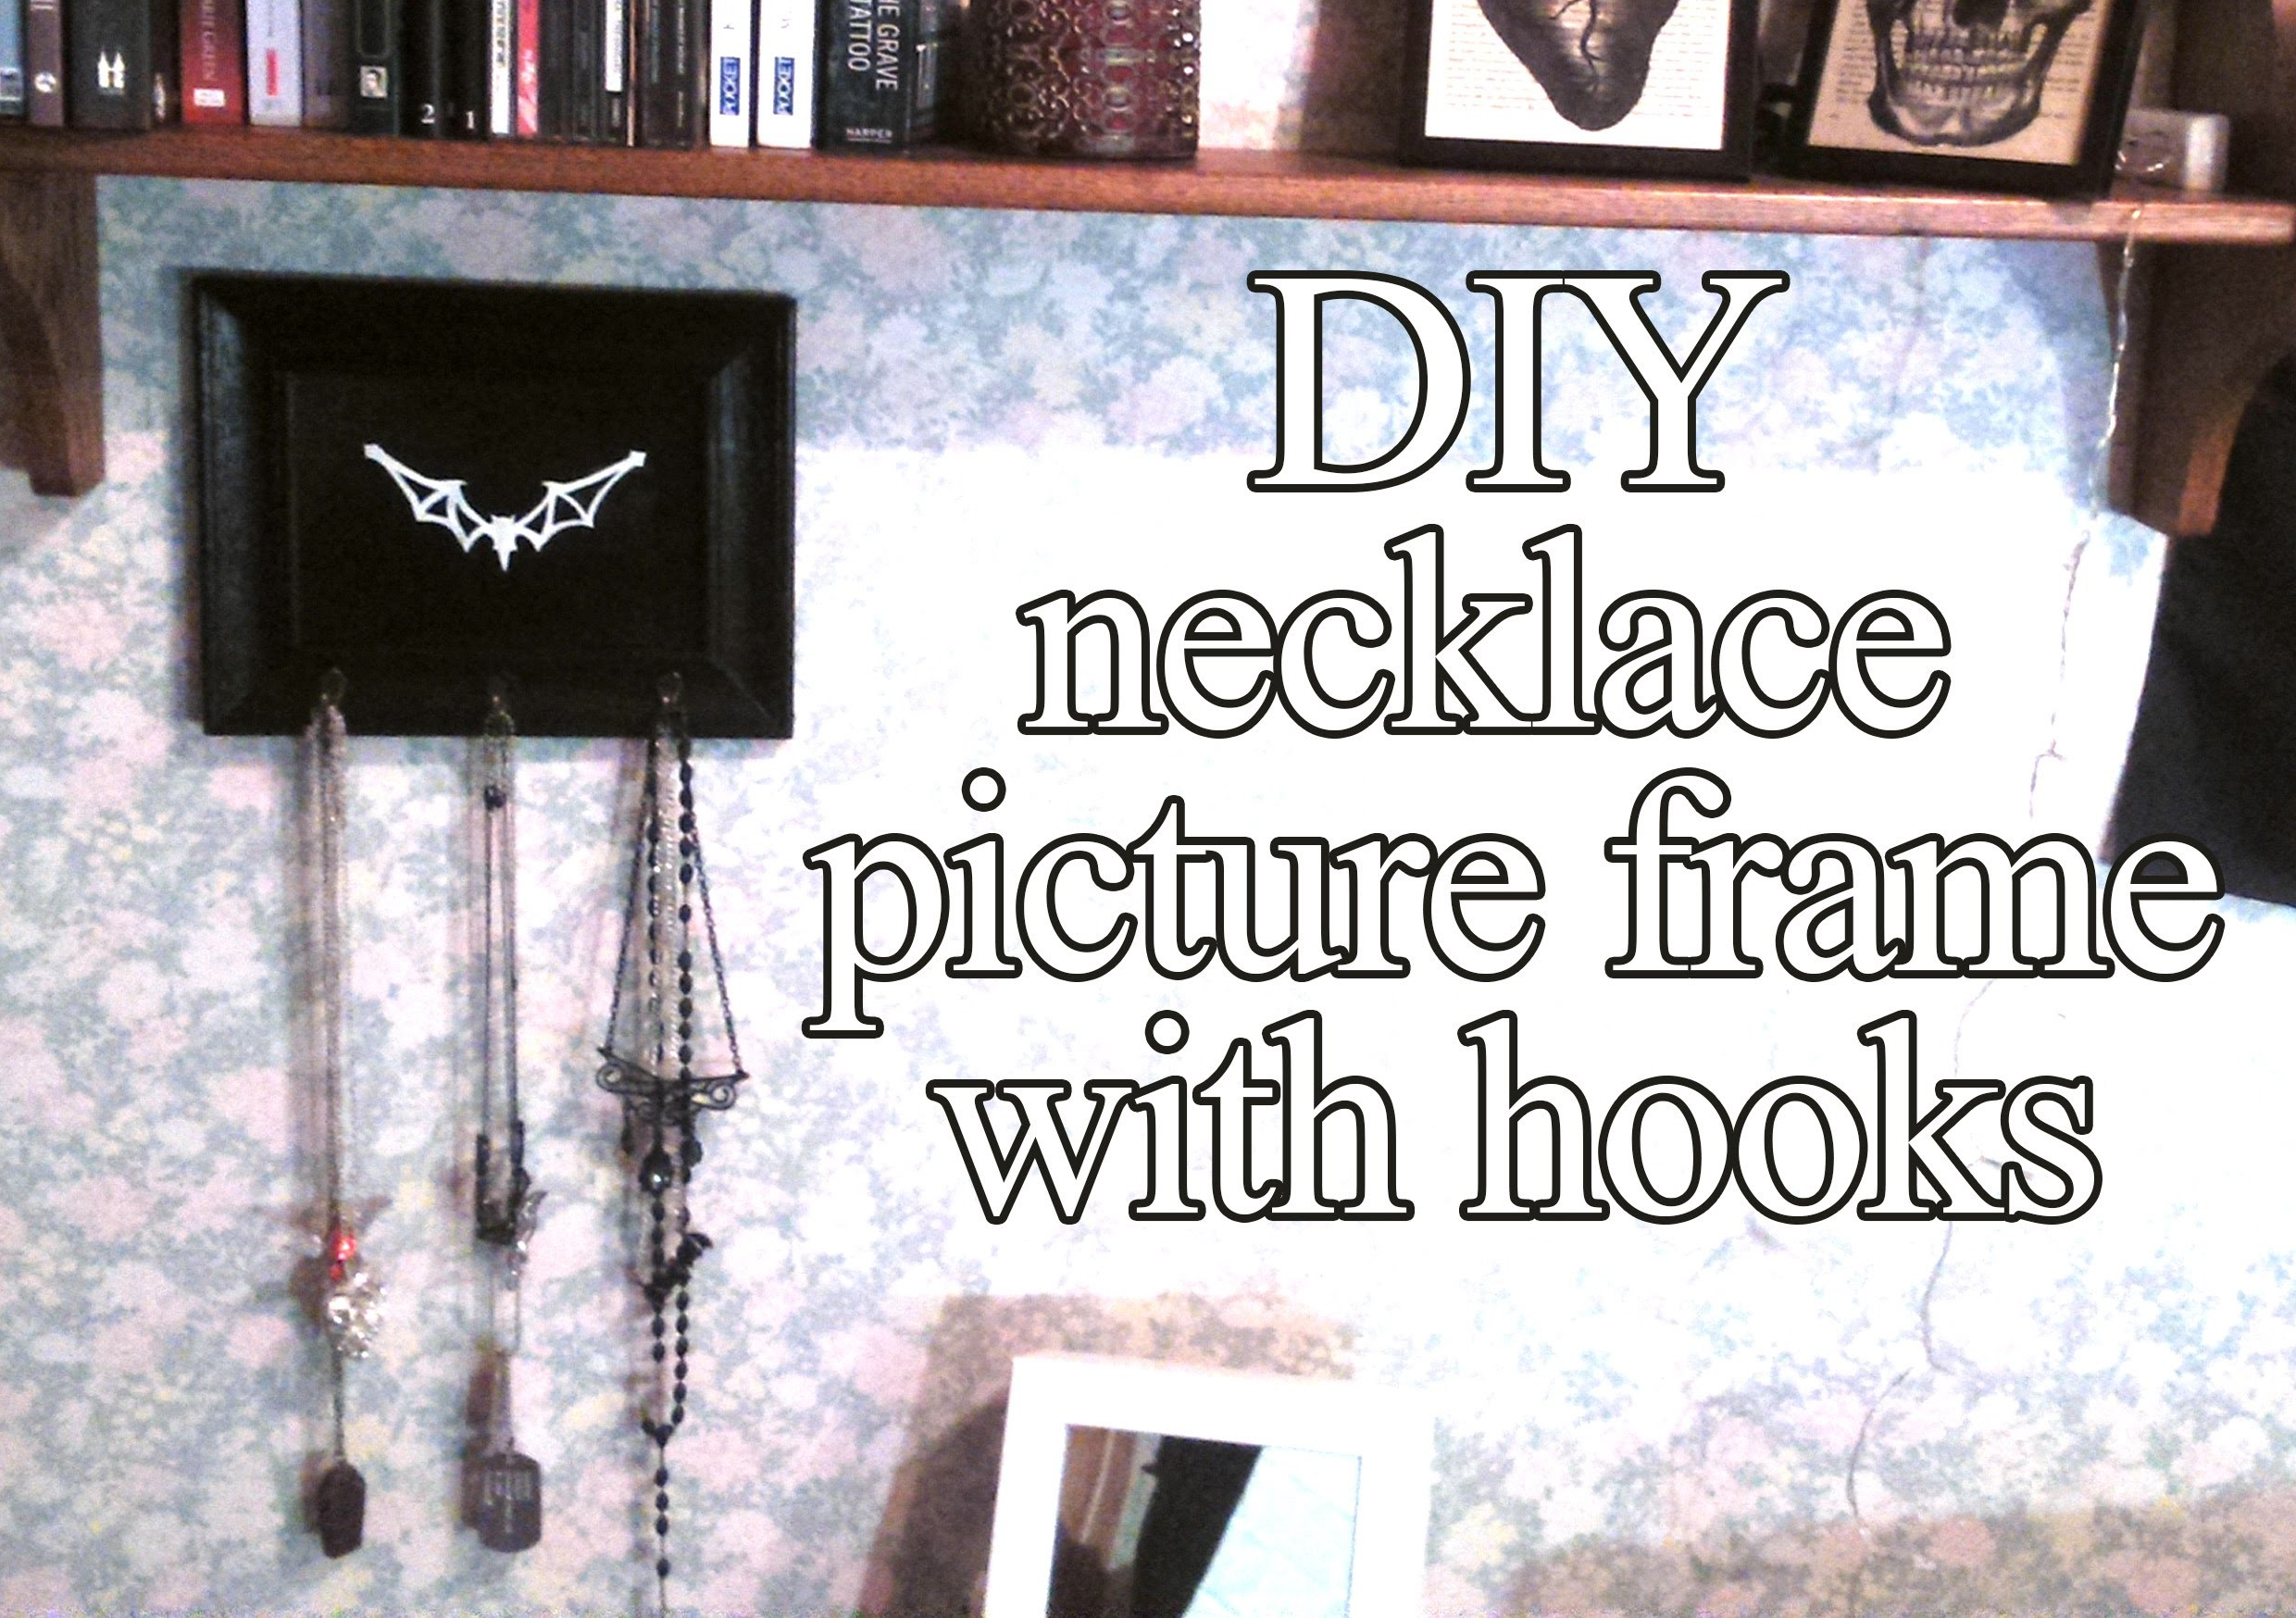 DIY - necklace frame